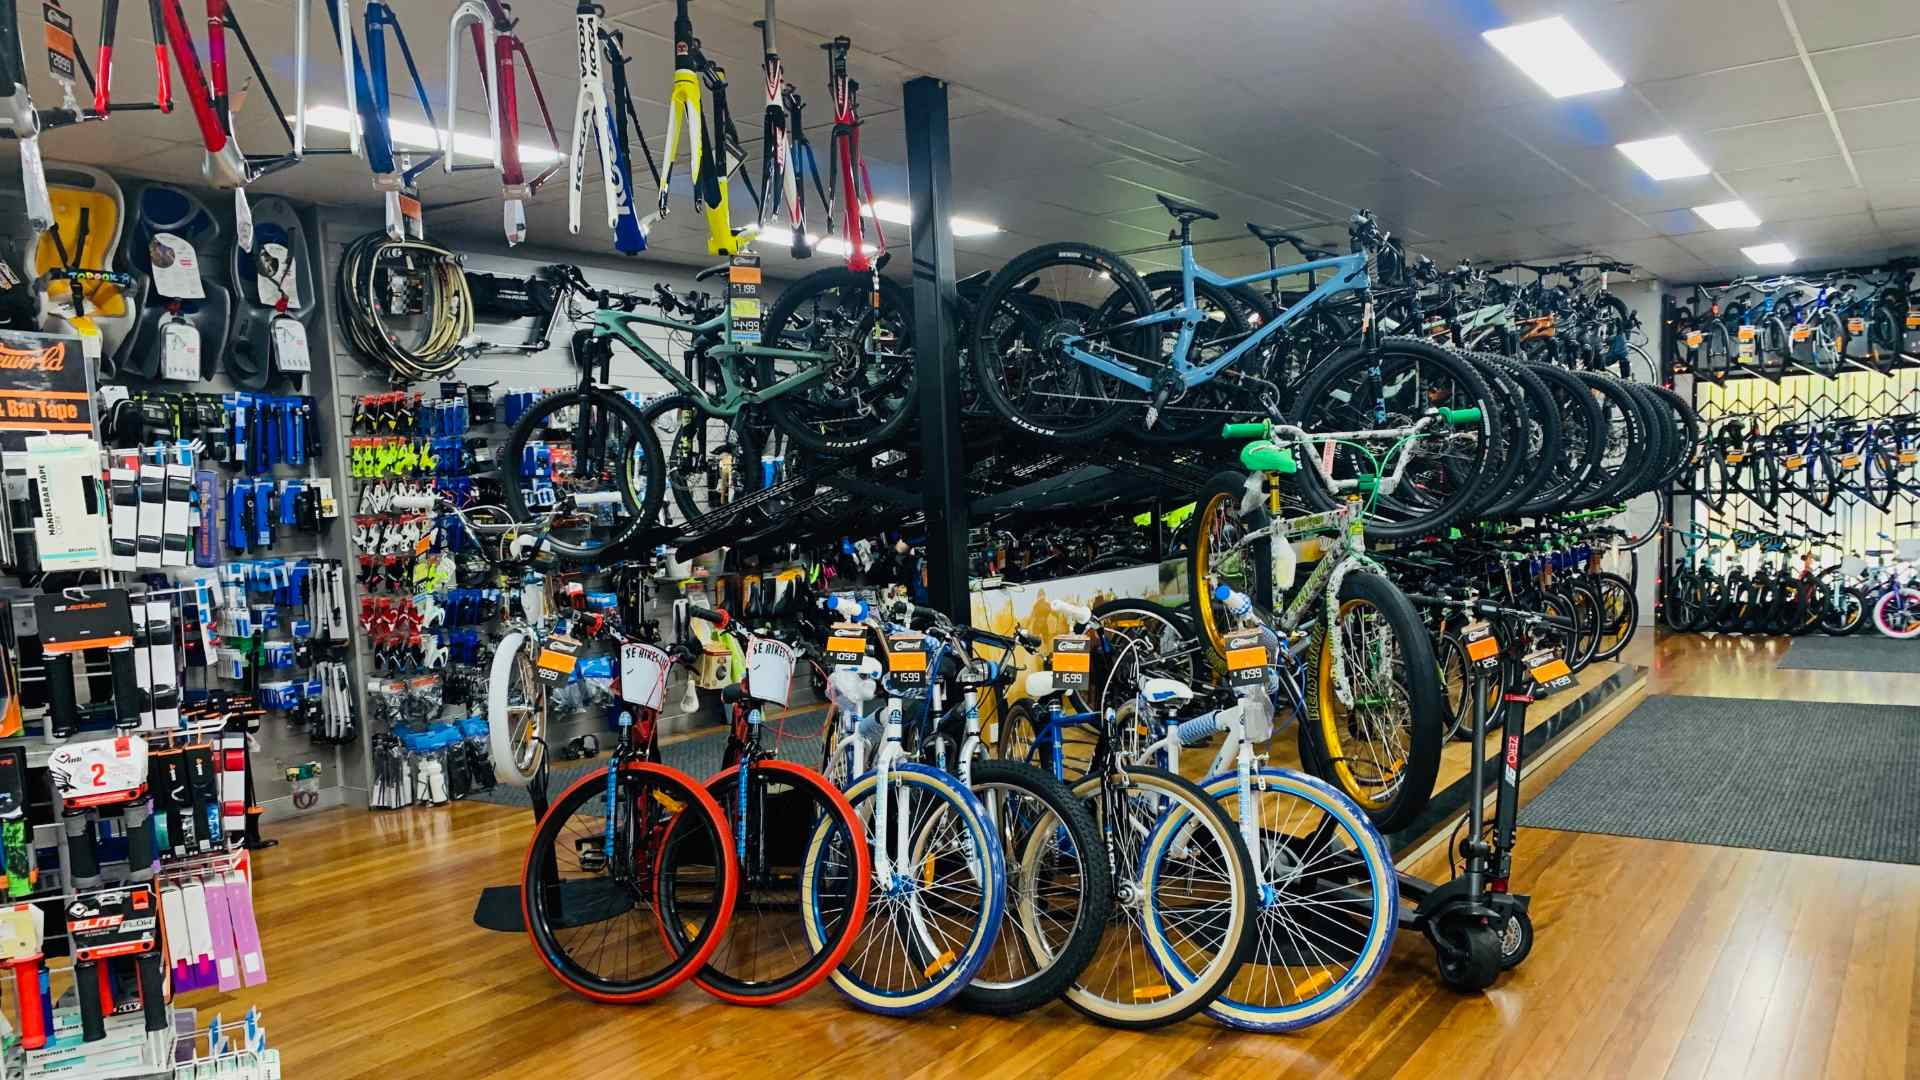 Bicycles in a bike shop